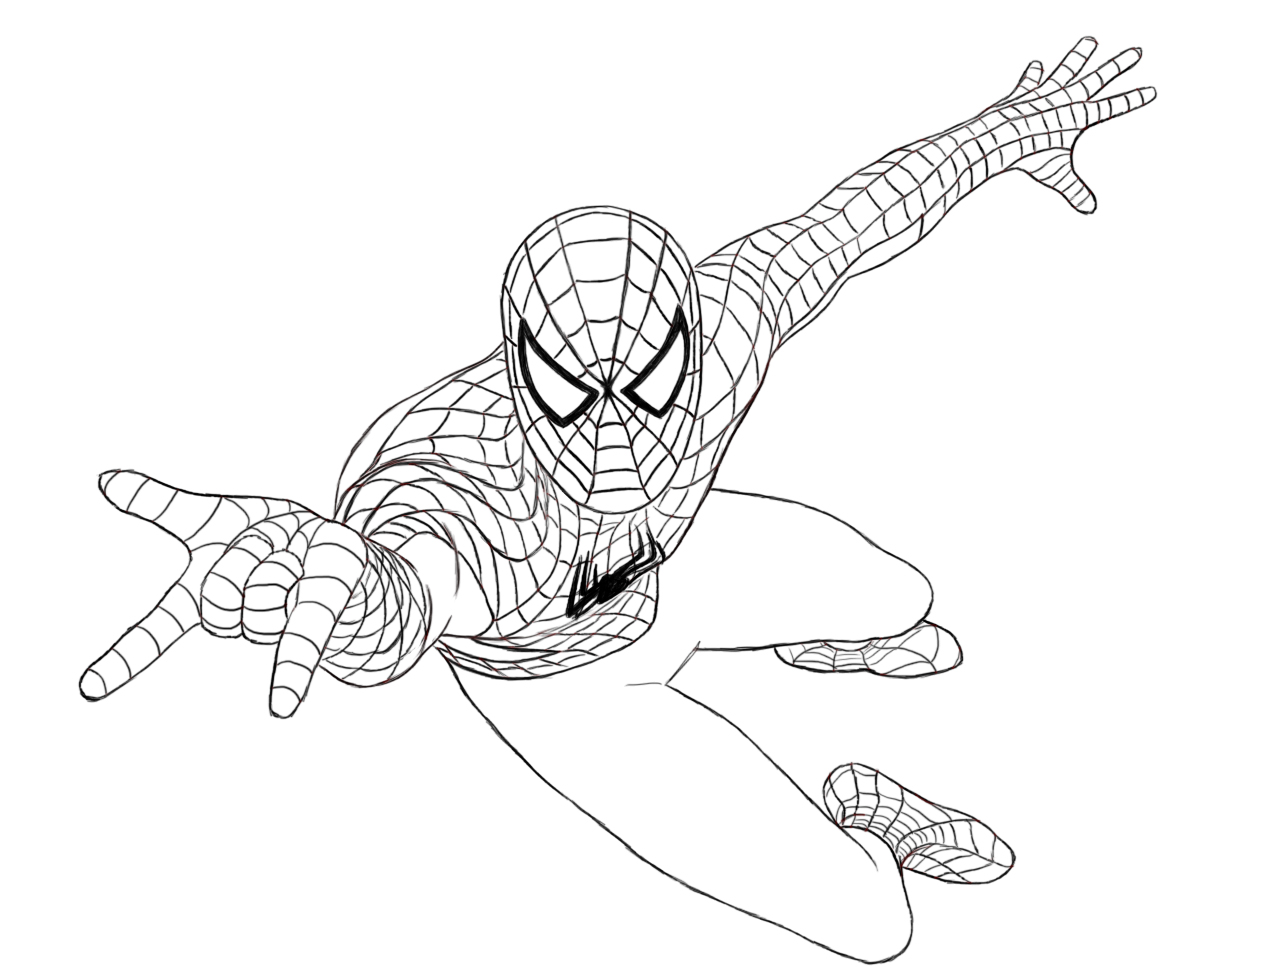 Drawn spider-man How To Spiderman Draw